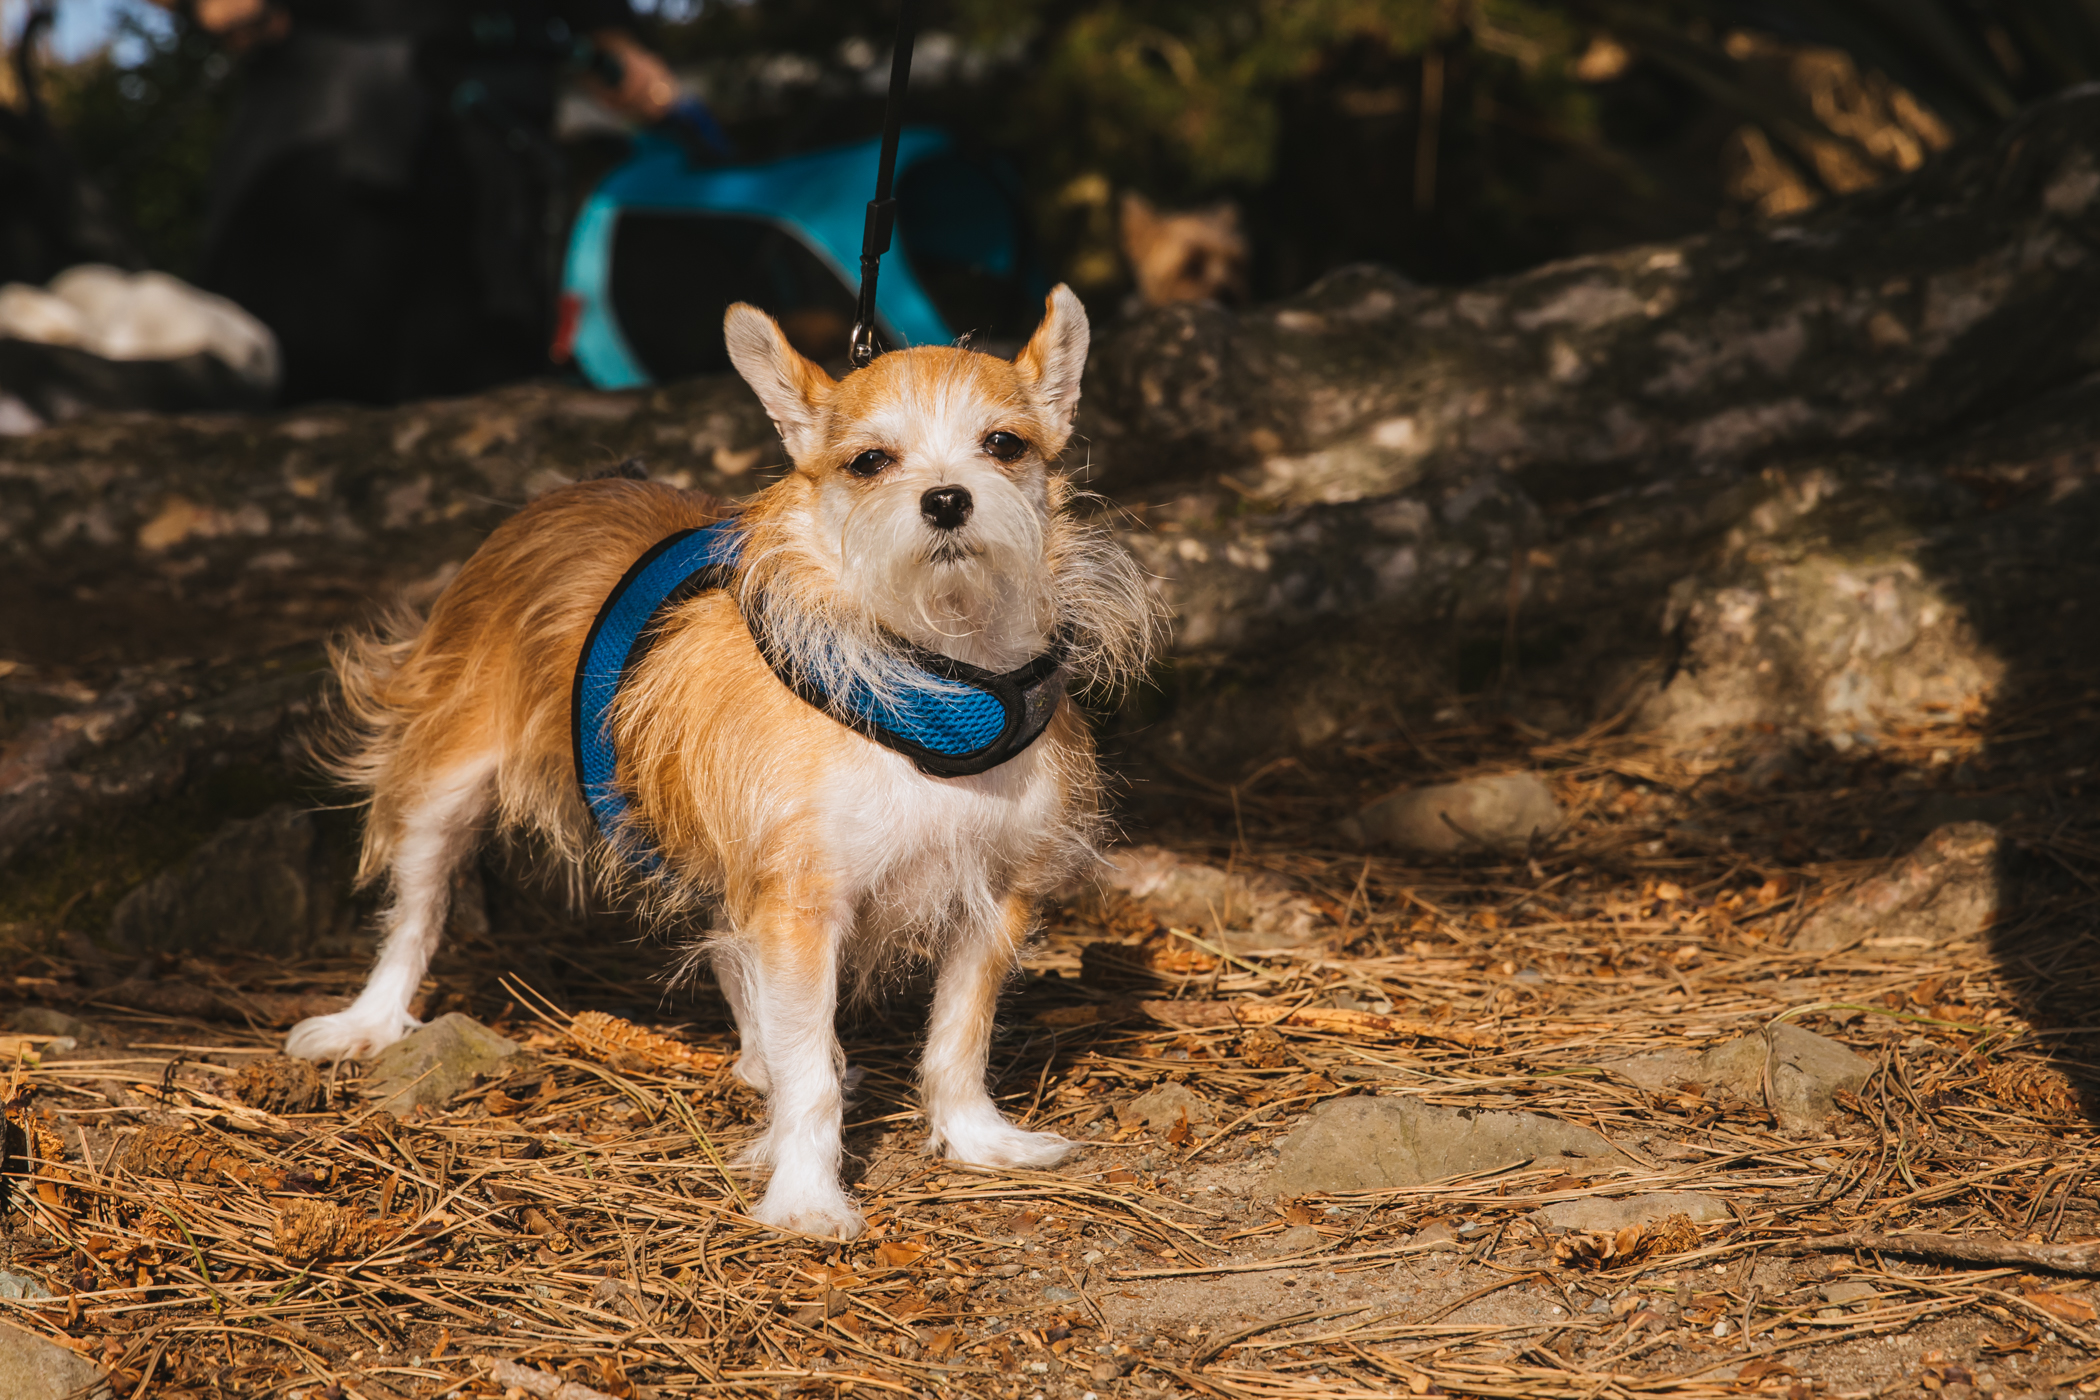 "Sweet little Ana Lewis is a 3-year-old Chihuahua-Yorkie who LOVES to ride in the car, go on shopping trips, and is inseparable from her dad. She doesn't really like other doggos, much prefers her humans.{&nbsp;}<a  href=""http://seattlerefined.com/ruffined"" target=""_blank"" title=""http://seattlerefined.com/ruffined"">The RUFFined Spotlight</a>{&nbsp;}is a weekly profile of local pets living and loving life in the PNW. If you or someone you know has a pet you'd like featured, email us at{&nbsp;}<a  href=""mailto:hello@seattlerefined.com"" target=""_blank"" title=""mailto:hello@seattlerefined.com"">hello@seattlerefined.com</a>, and your furbaby could be the next spotlighted! (Image: Sunita Martini / Seattle Refined)"